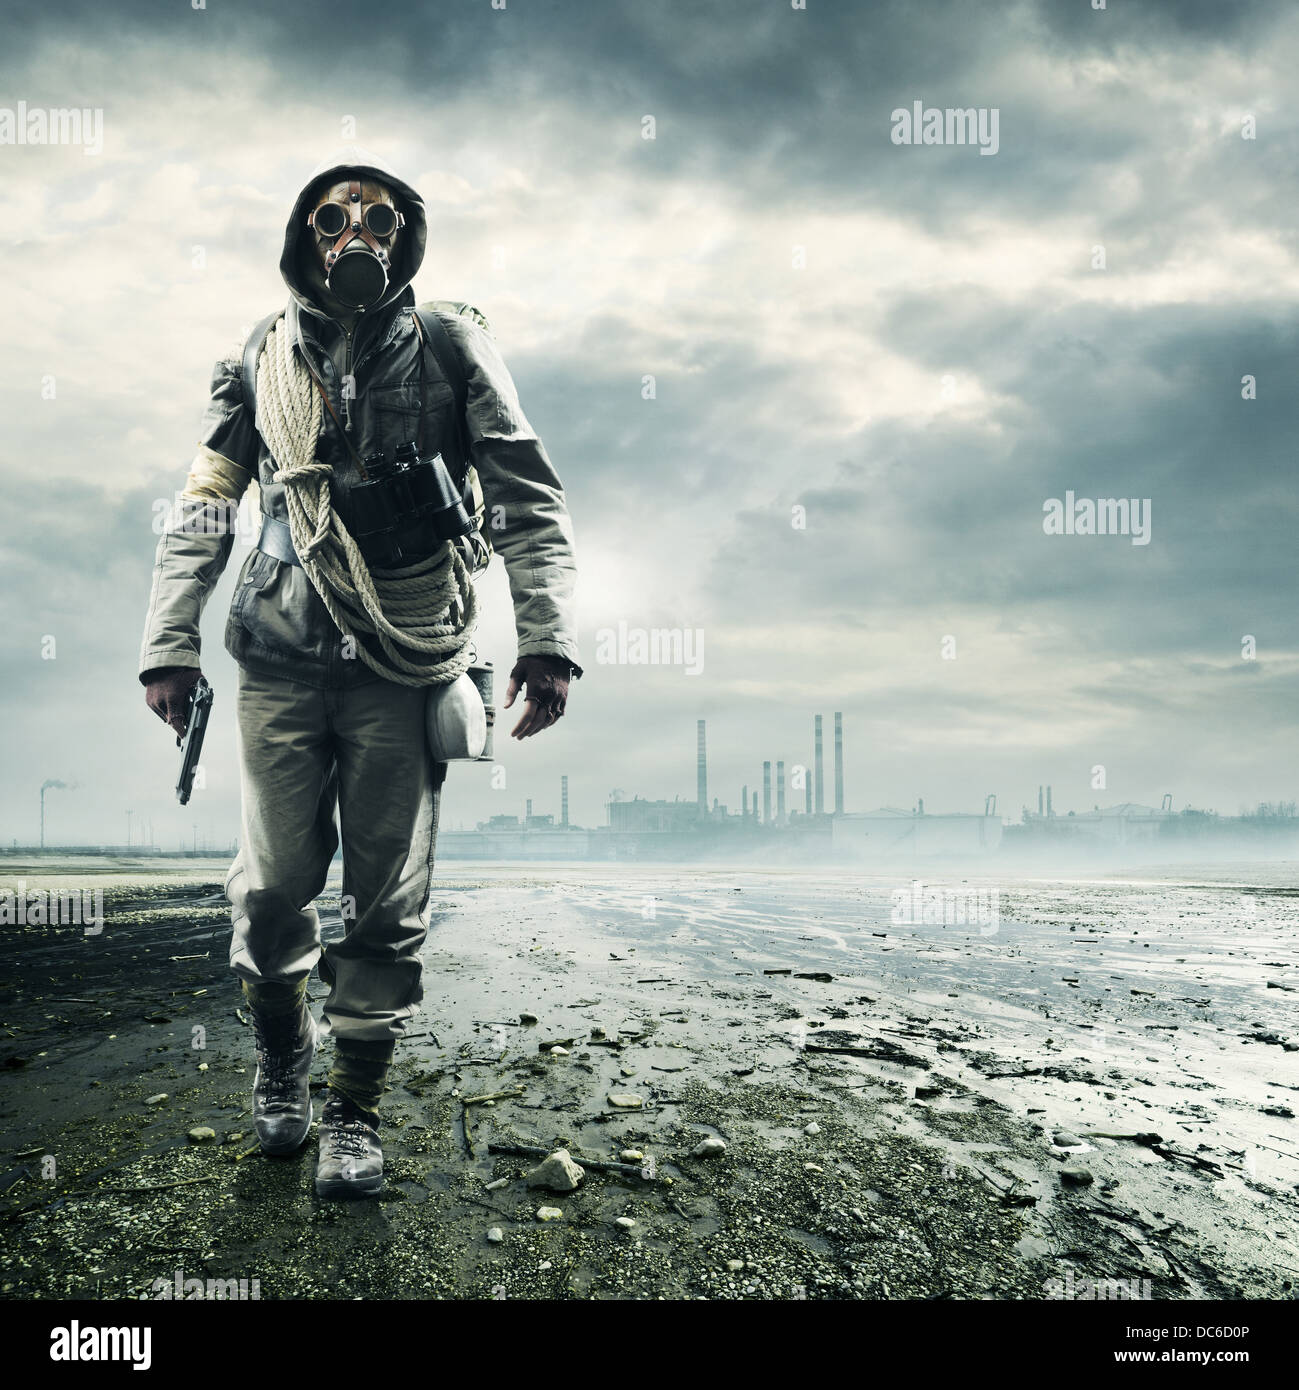 Environmental disaster - Stock Image